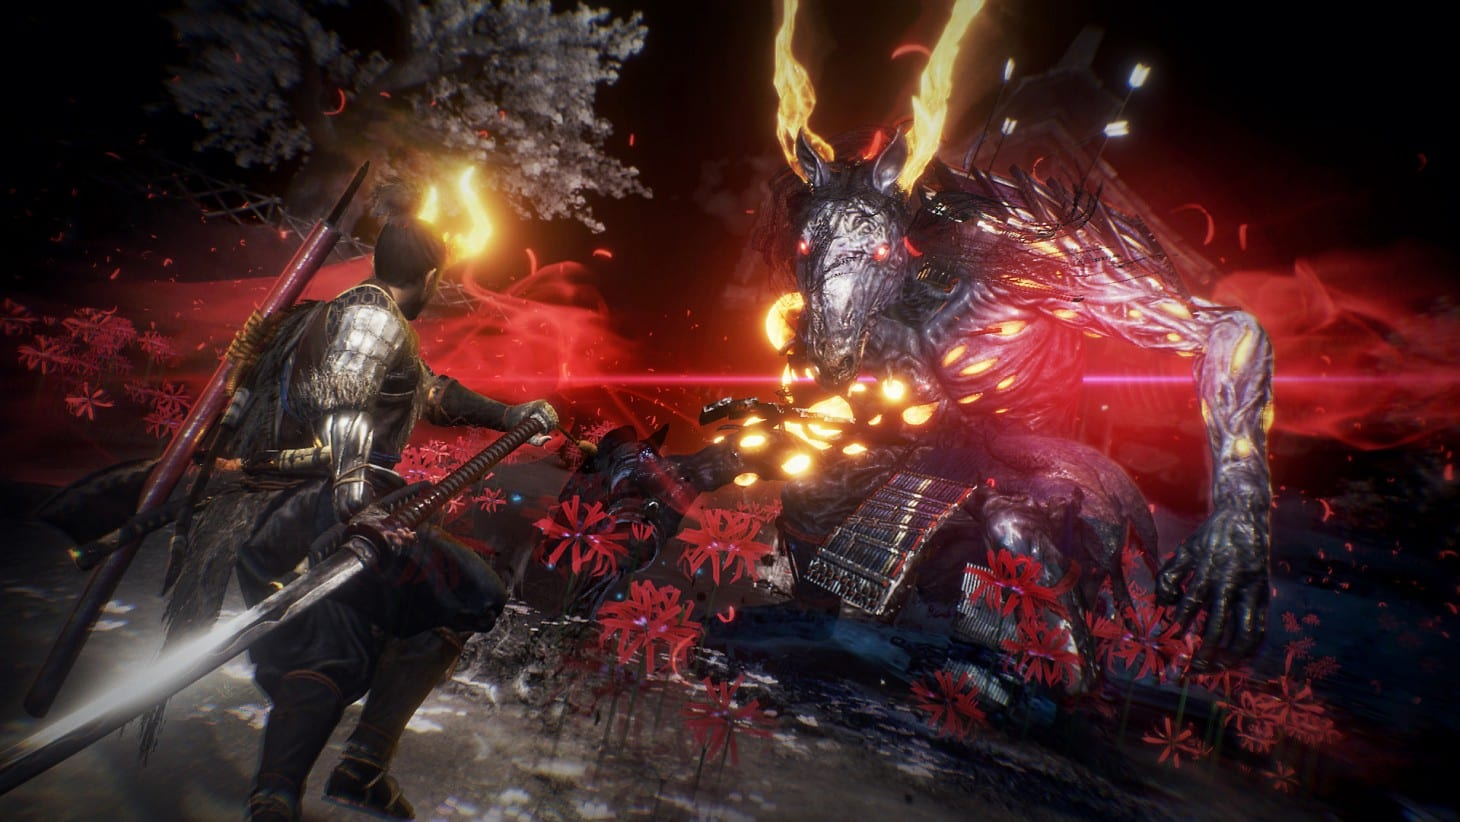 nioh 2, change character appearance